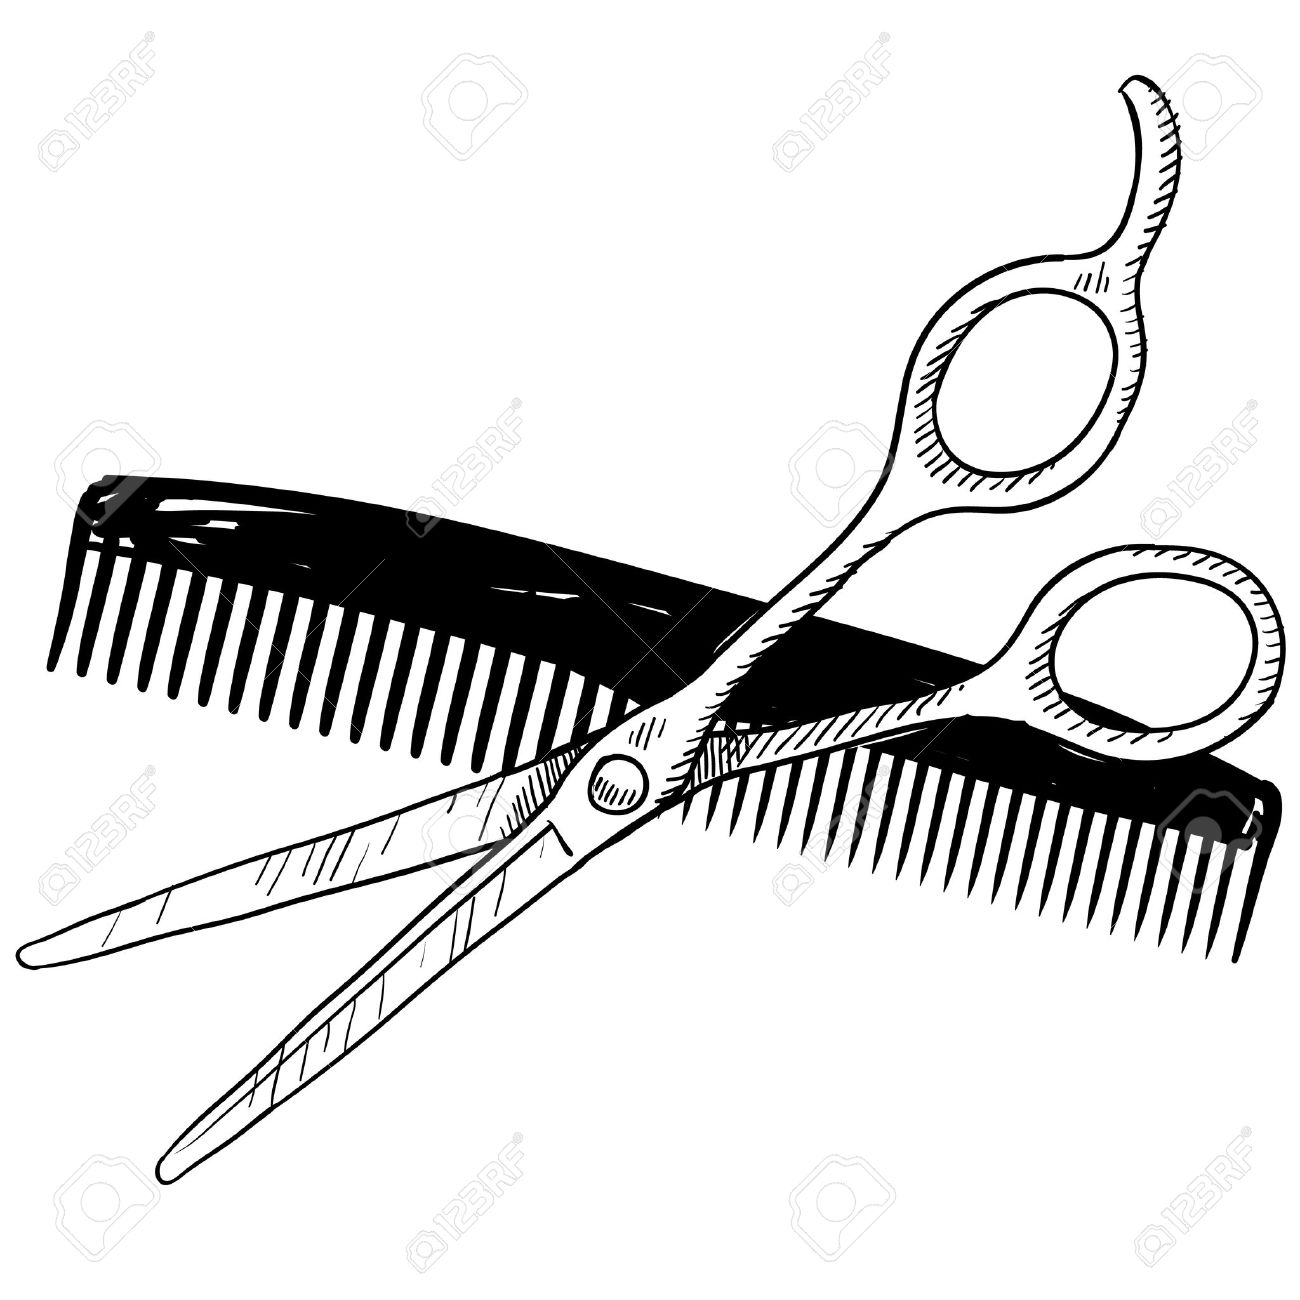 doodle style hair stylist or barber scissors and comb illustration